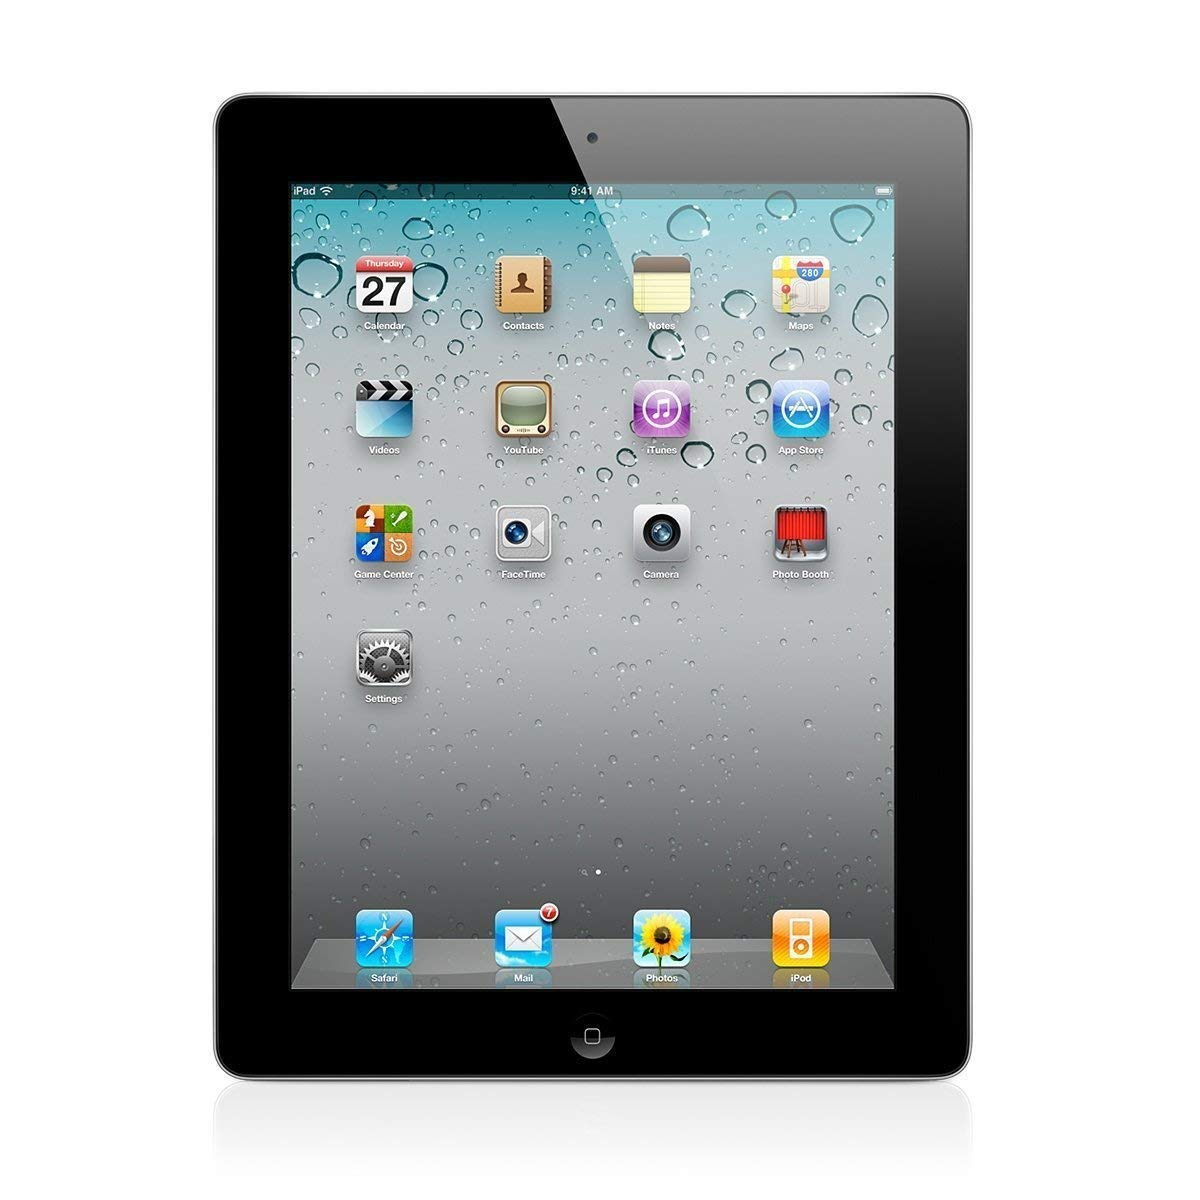 apple-ipad-2-mc769lla-97-inch-16gb-black-1395-renewed